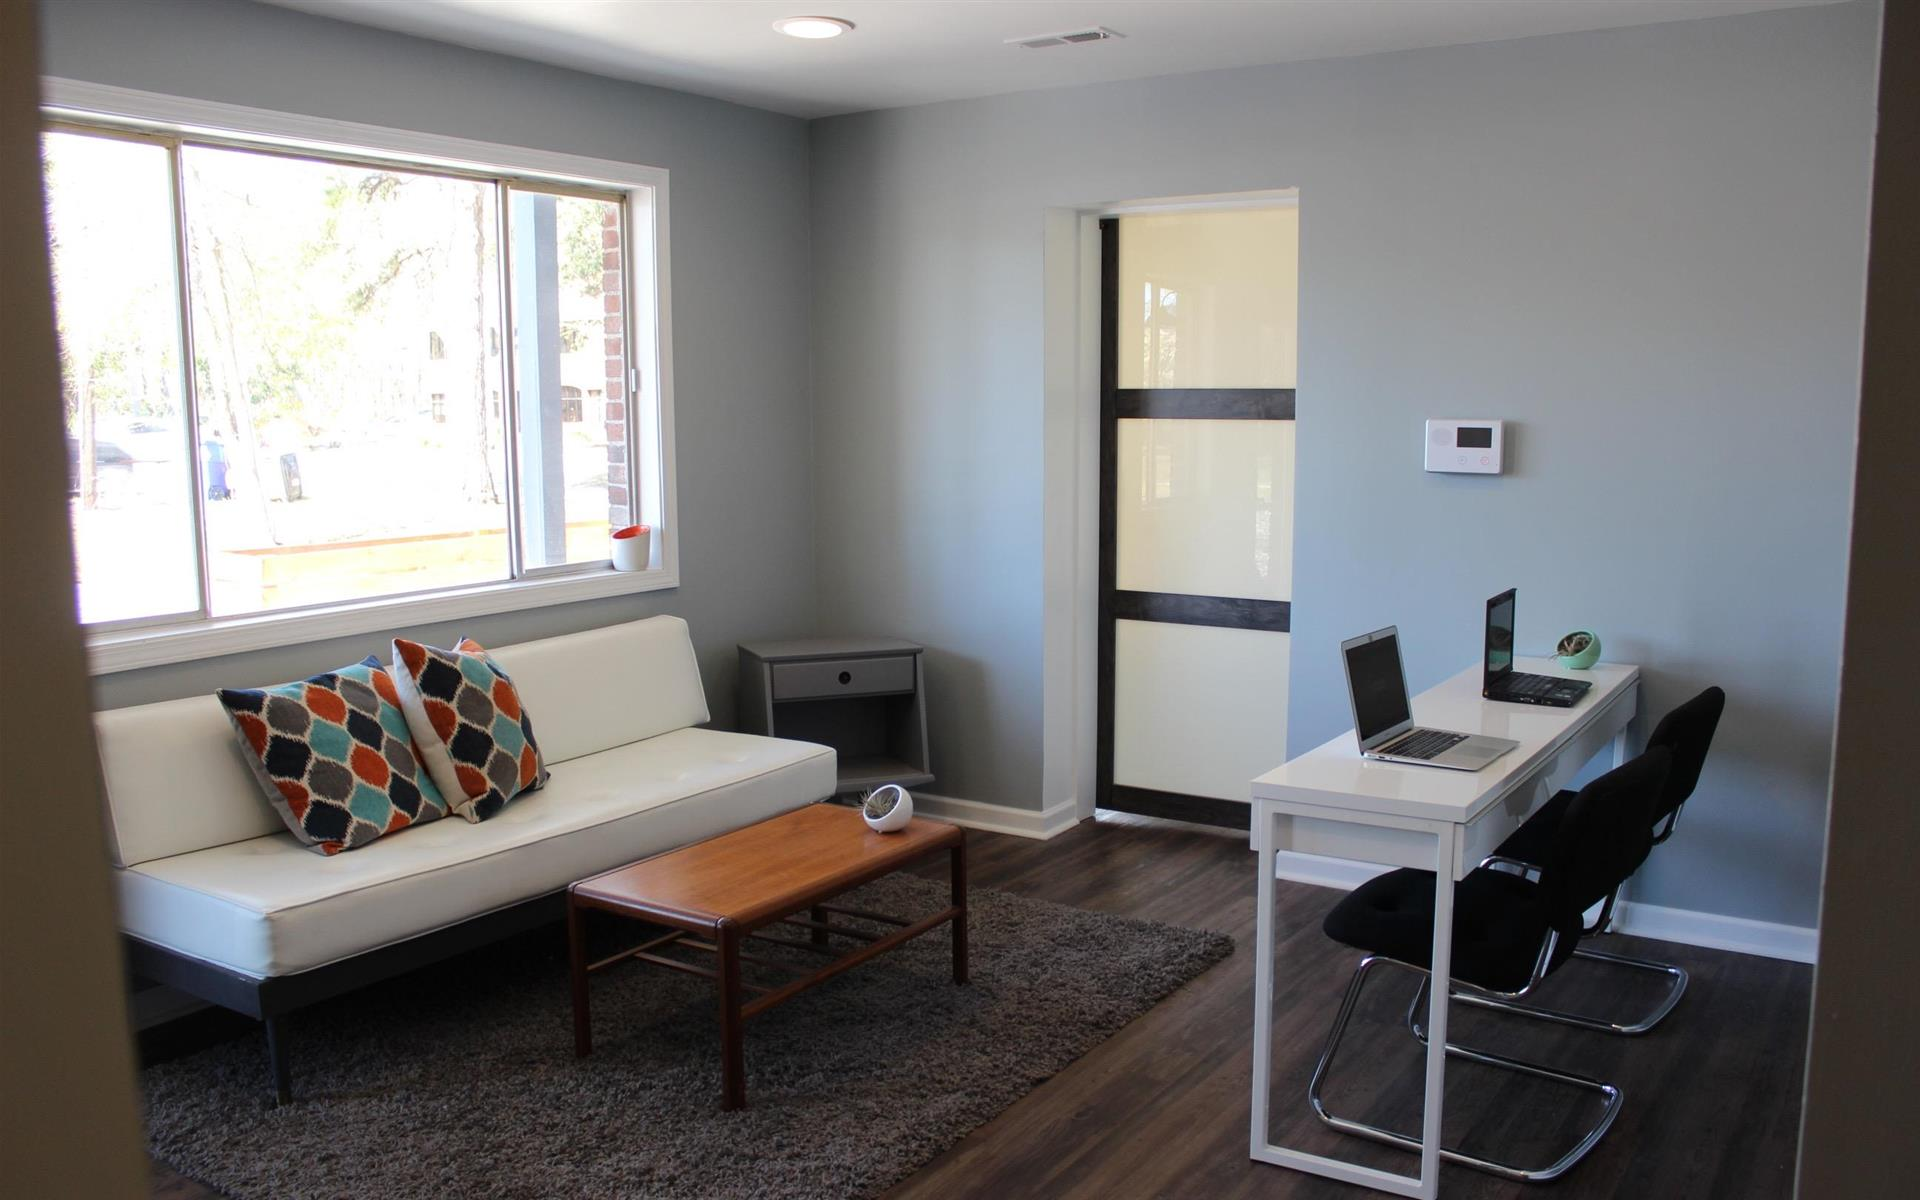 The Works, James Island - Co-Working Stations